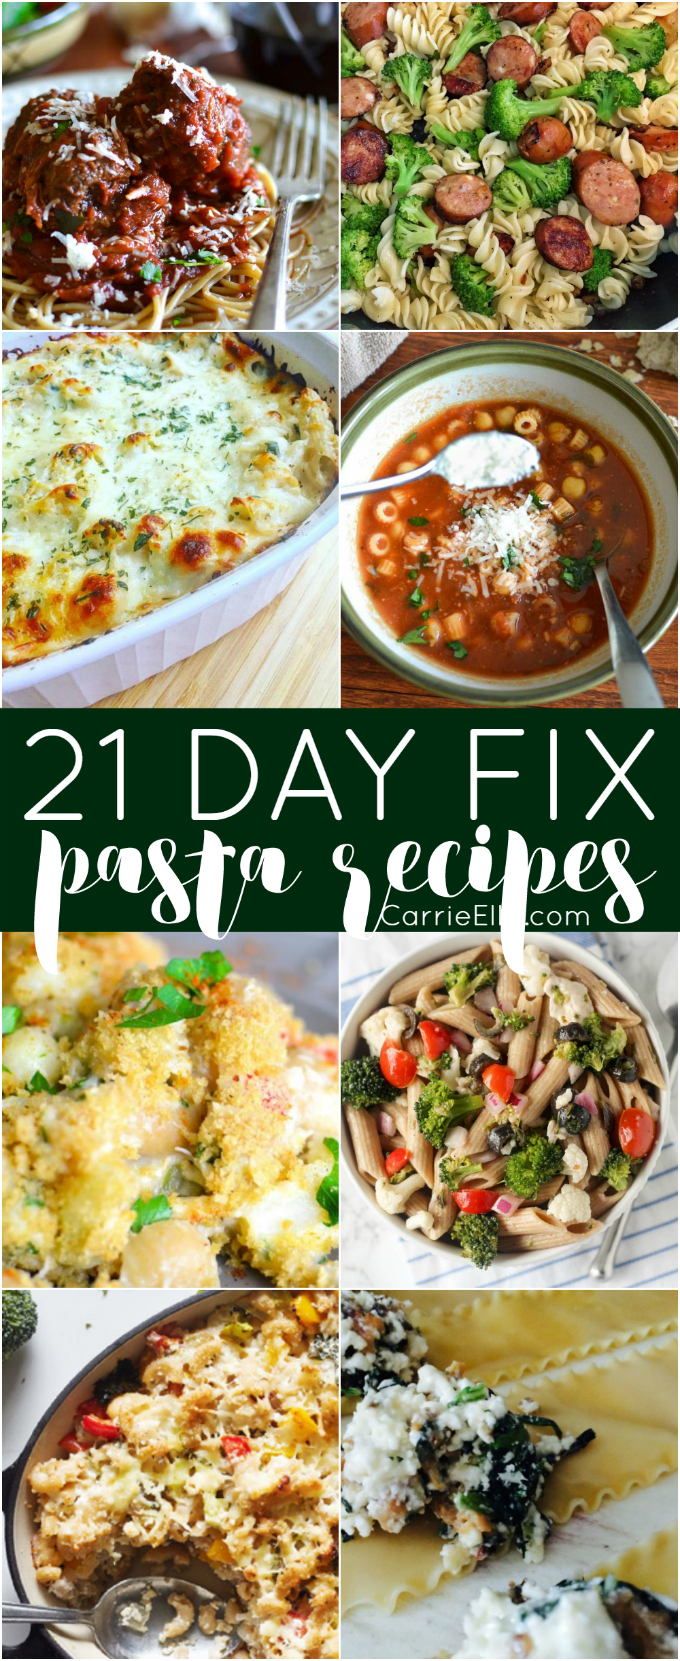 21 Day Fix Pasta Recipes